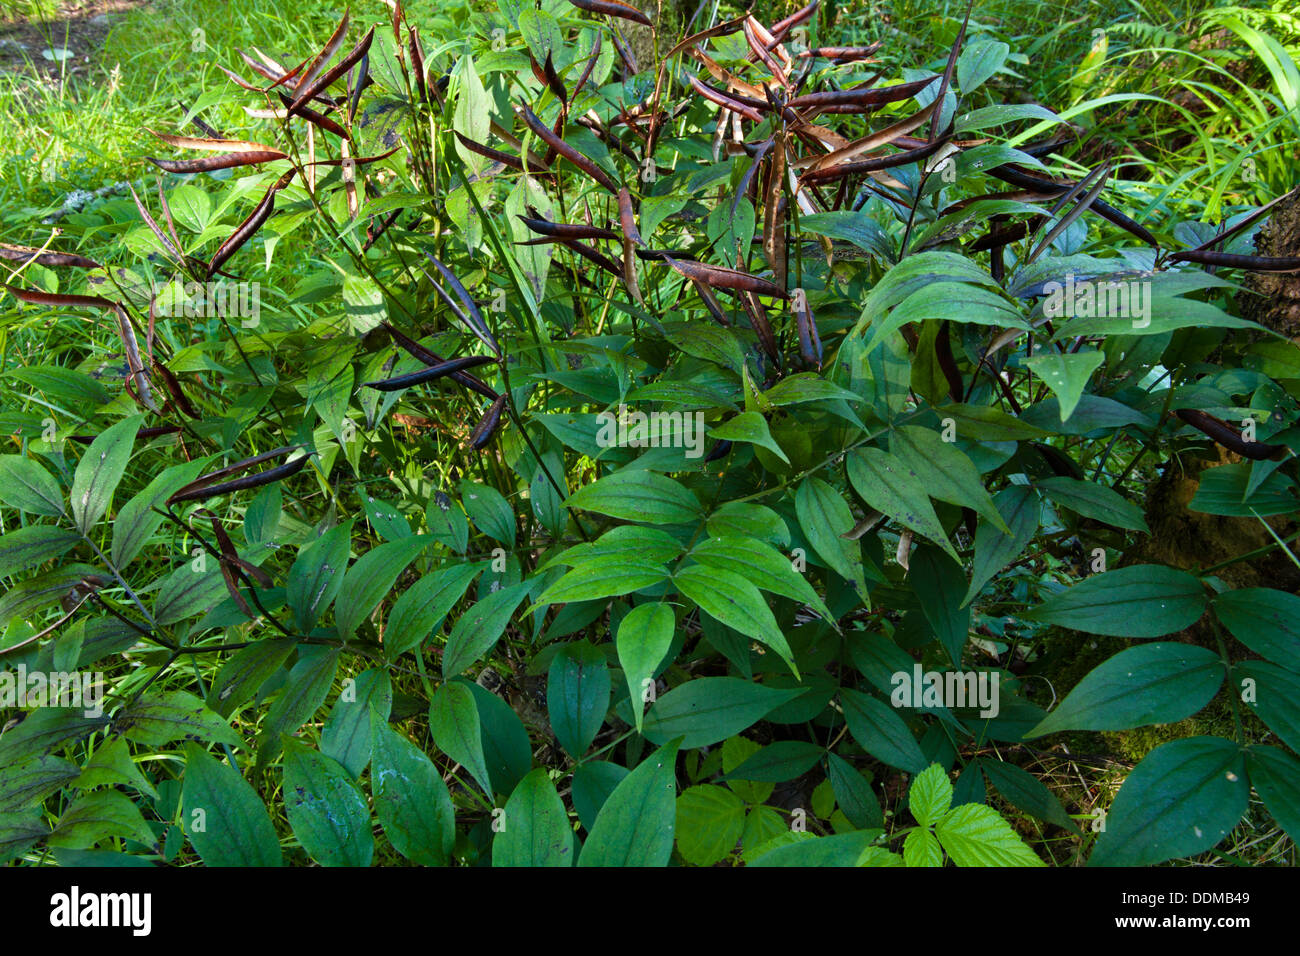 Spring vetchling (Lathyrus vernus) in autumn with seed pods - Stock Image